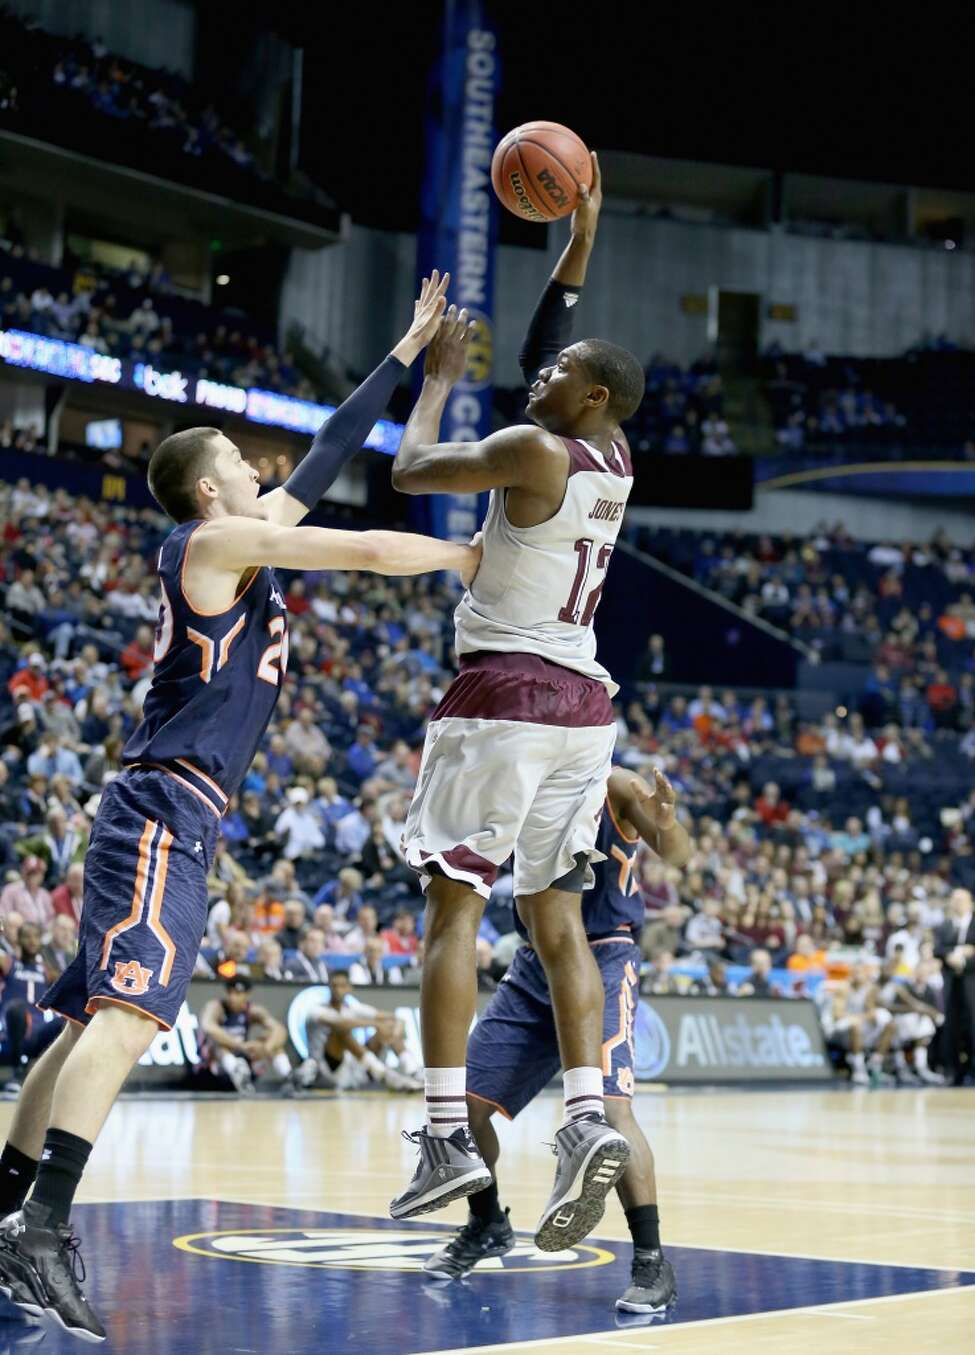 NASHVILLE, TN - MARCH 12: Jalen Jones #12 of the Texas A&M Aggies shoots the ball against the Auburn Tigers during the second round game of the SEC Basketball Tournament at Bridgestone Arena on March 12, 2015 in Nashville, Tennessee. (Photo by Andy Lyons/Getty Images)